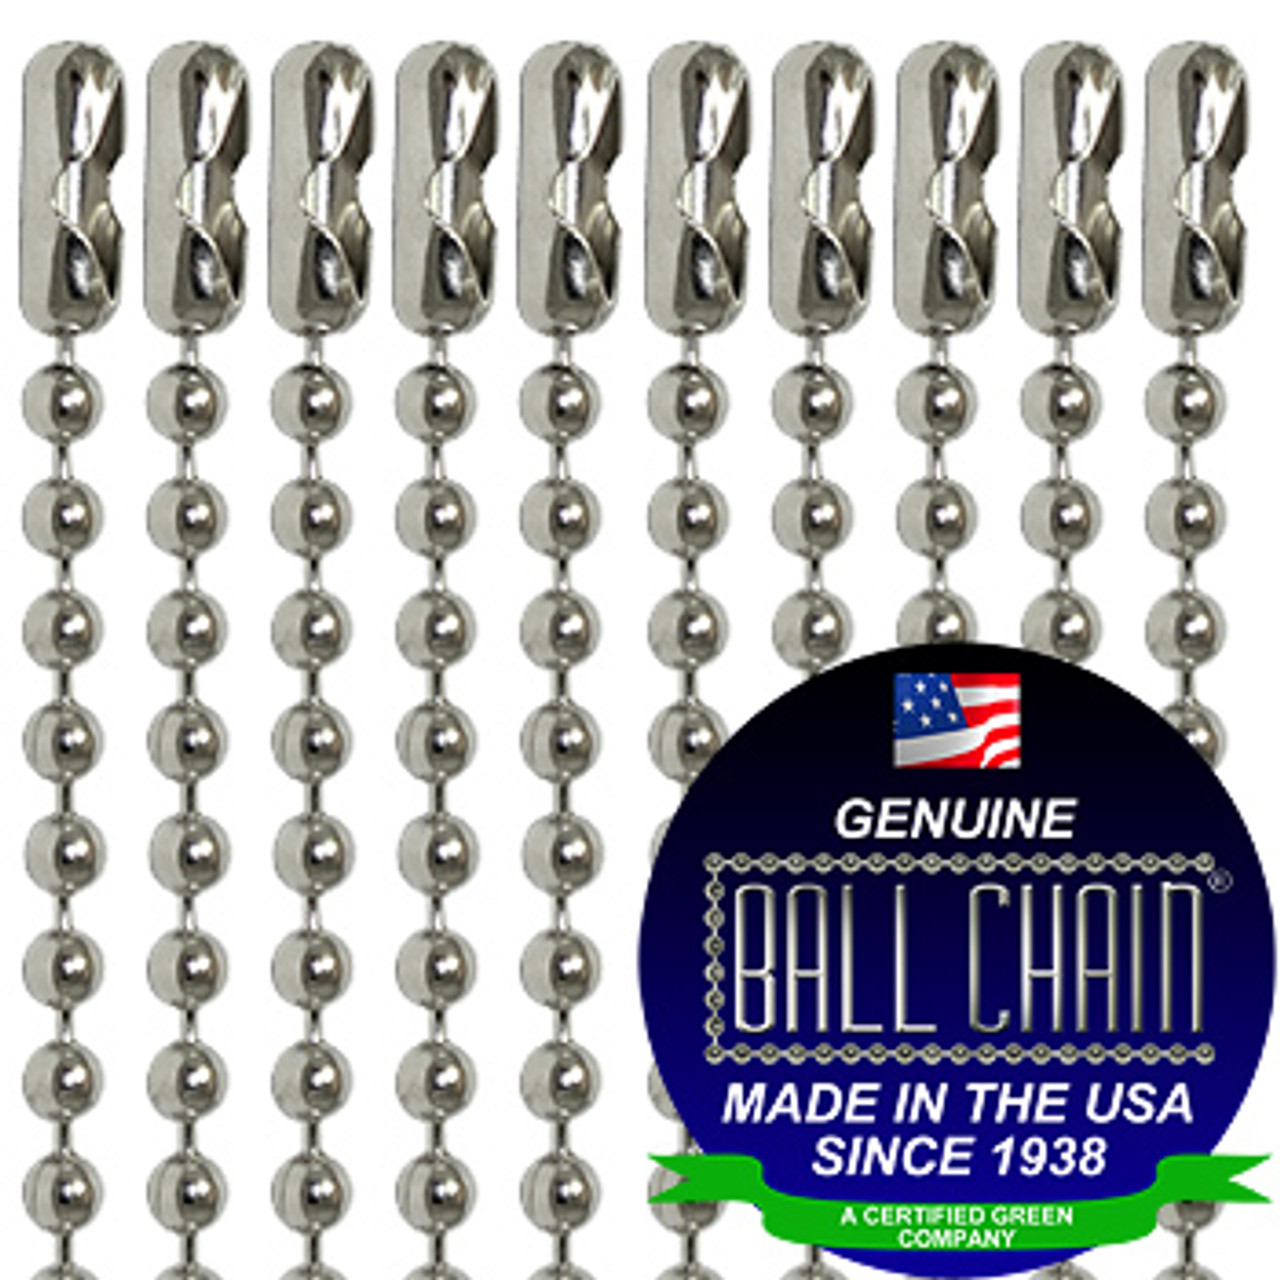 #3 Nickel Plated Steel Ball Chains with Connector - 24 Inch Length. 24 inch nickel plated steel ball chain necklaces.